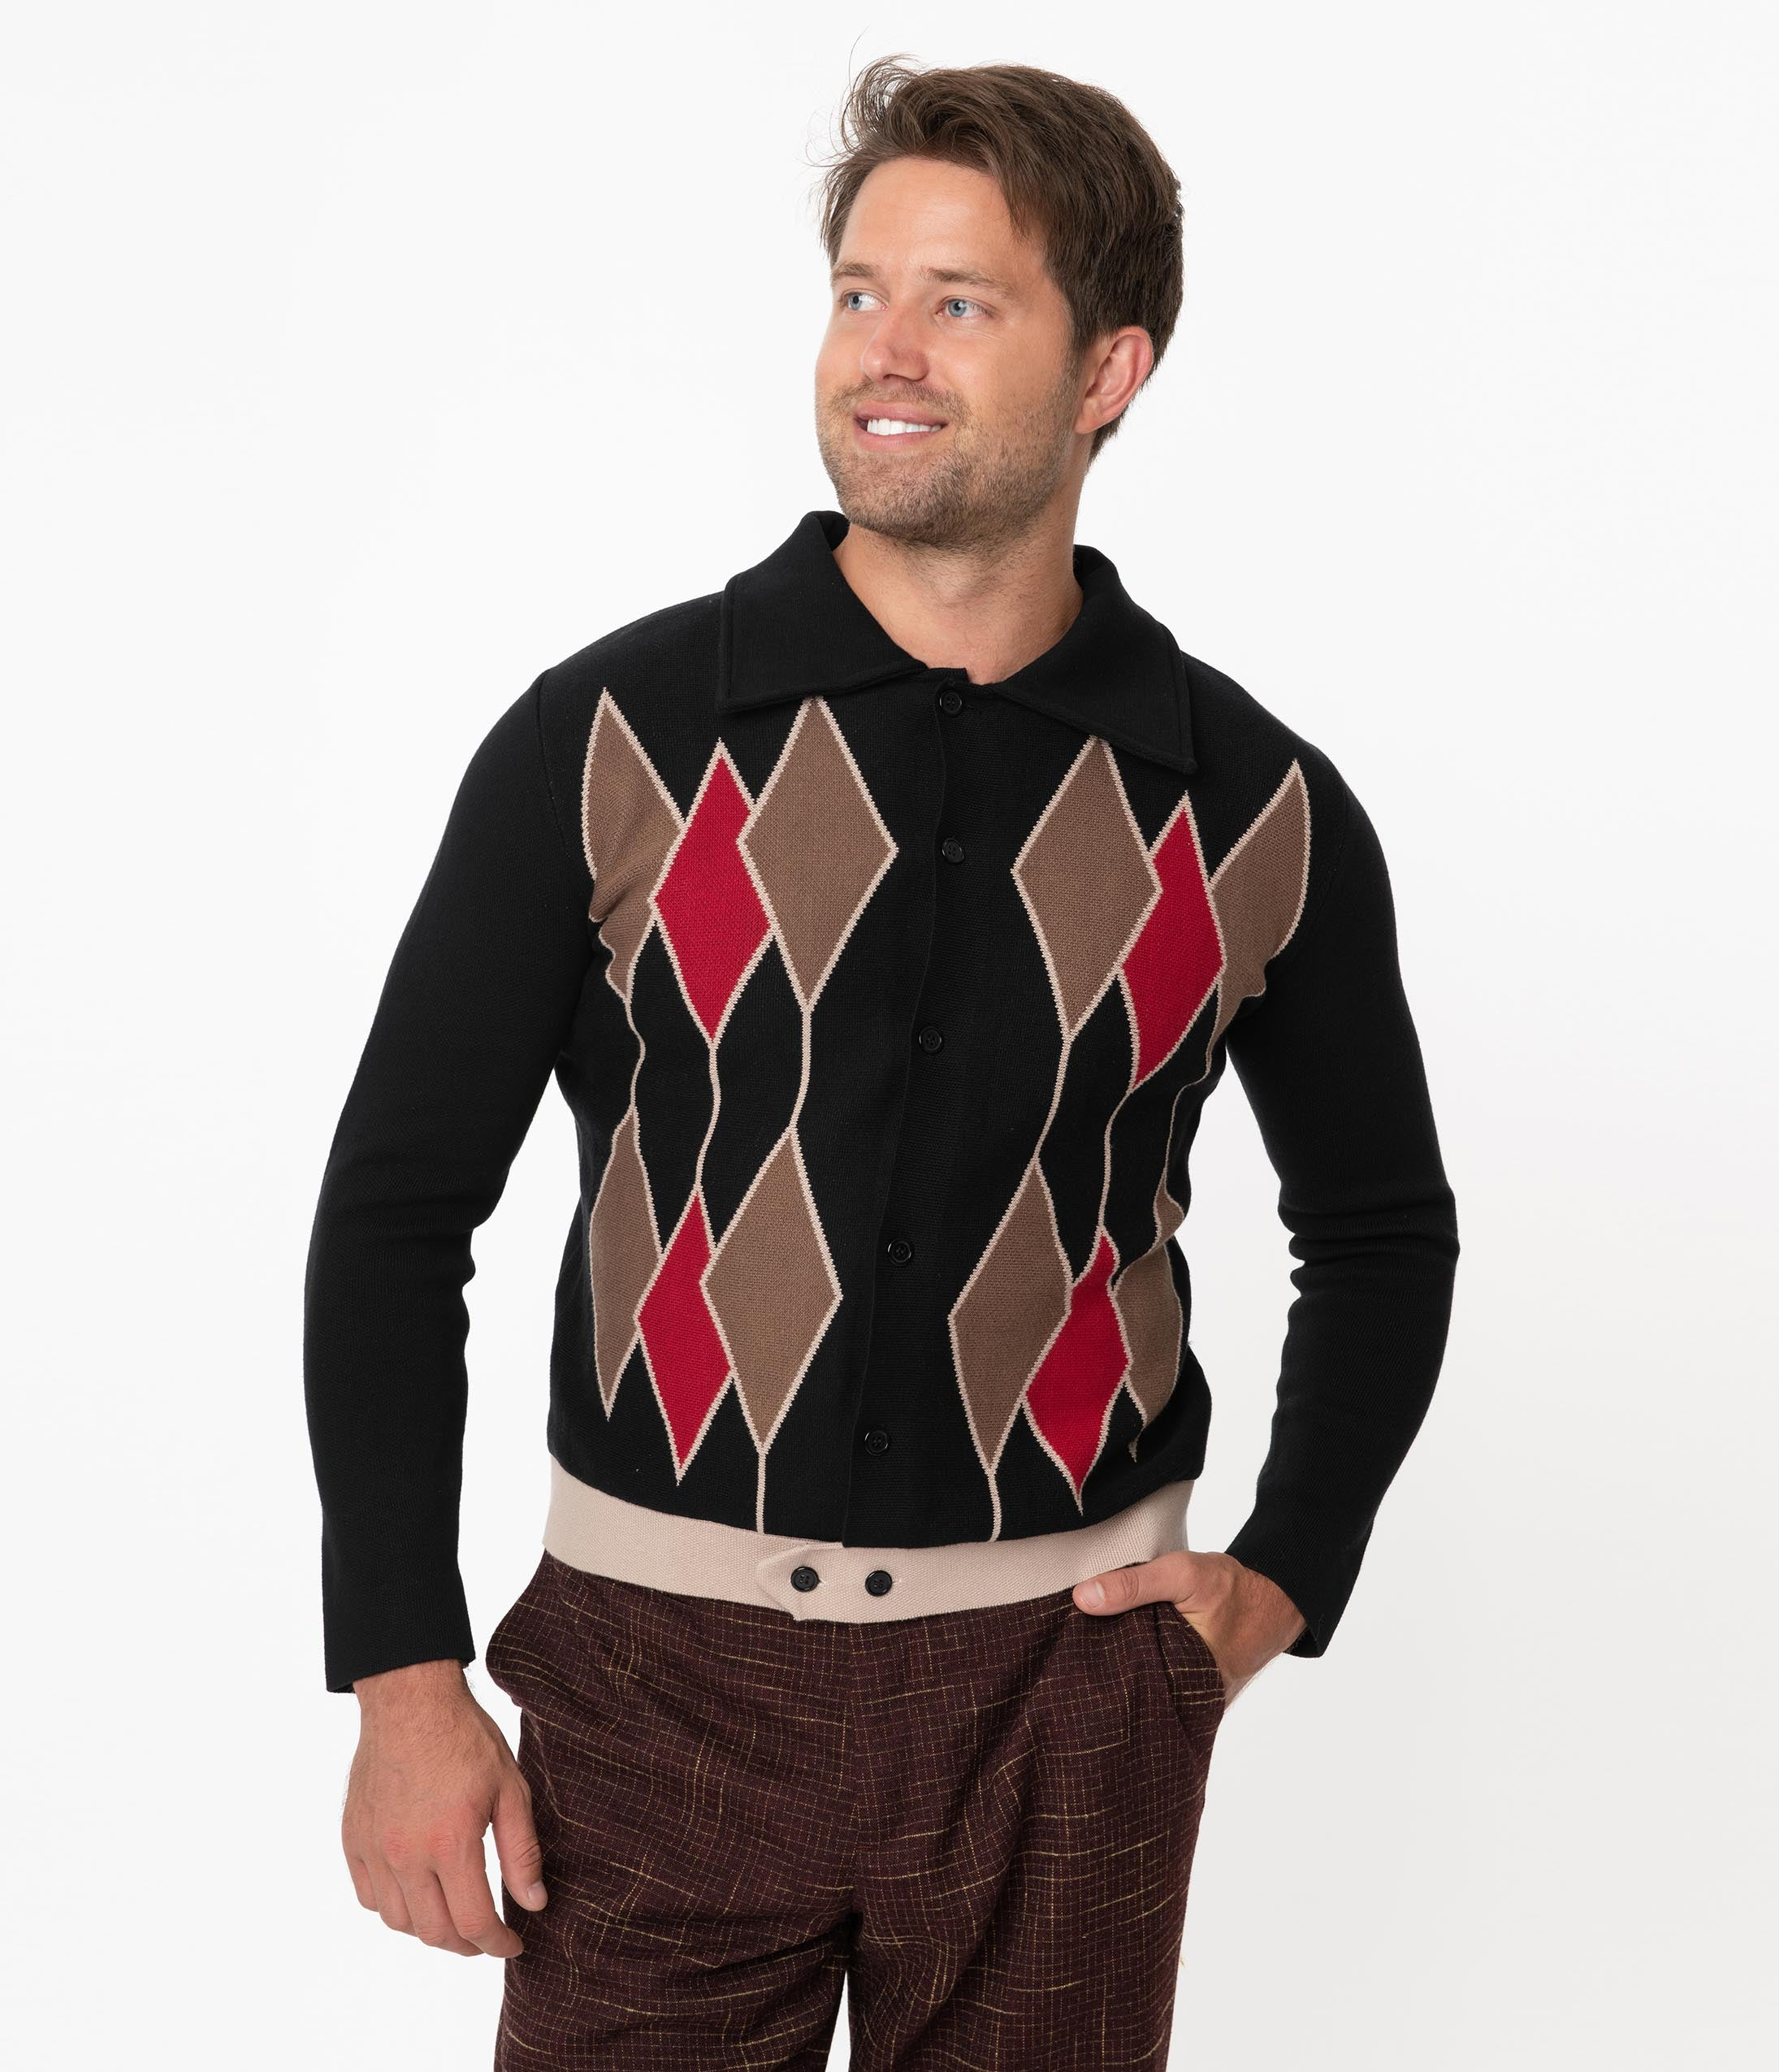 Men's Vintage Sweaters History Collectif Black Diamond Knit Luca Mens Cardigan $72.00 AT vintagedancer.com